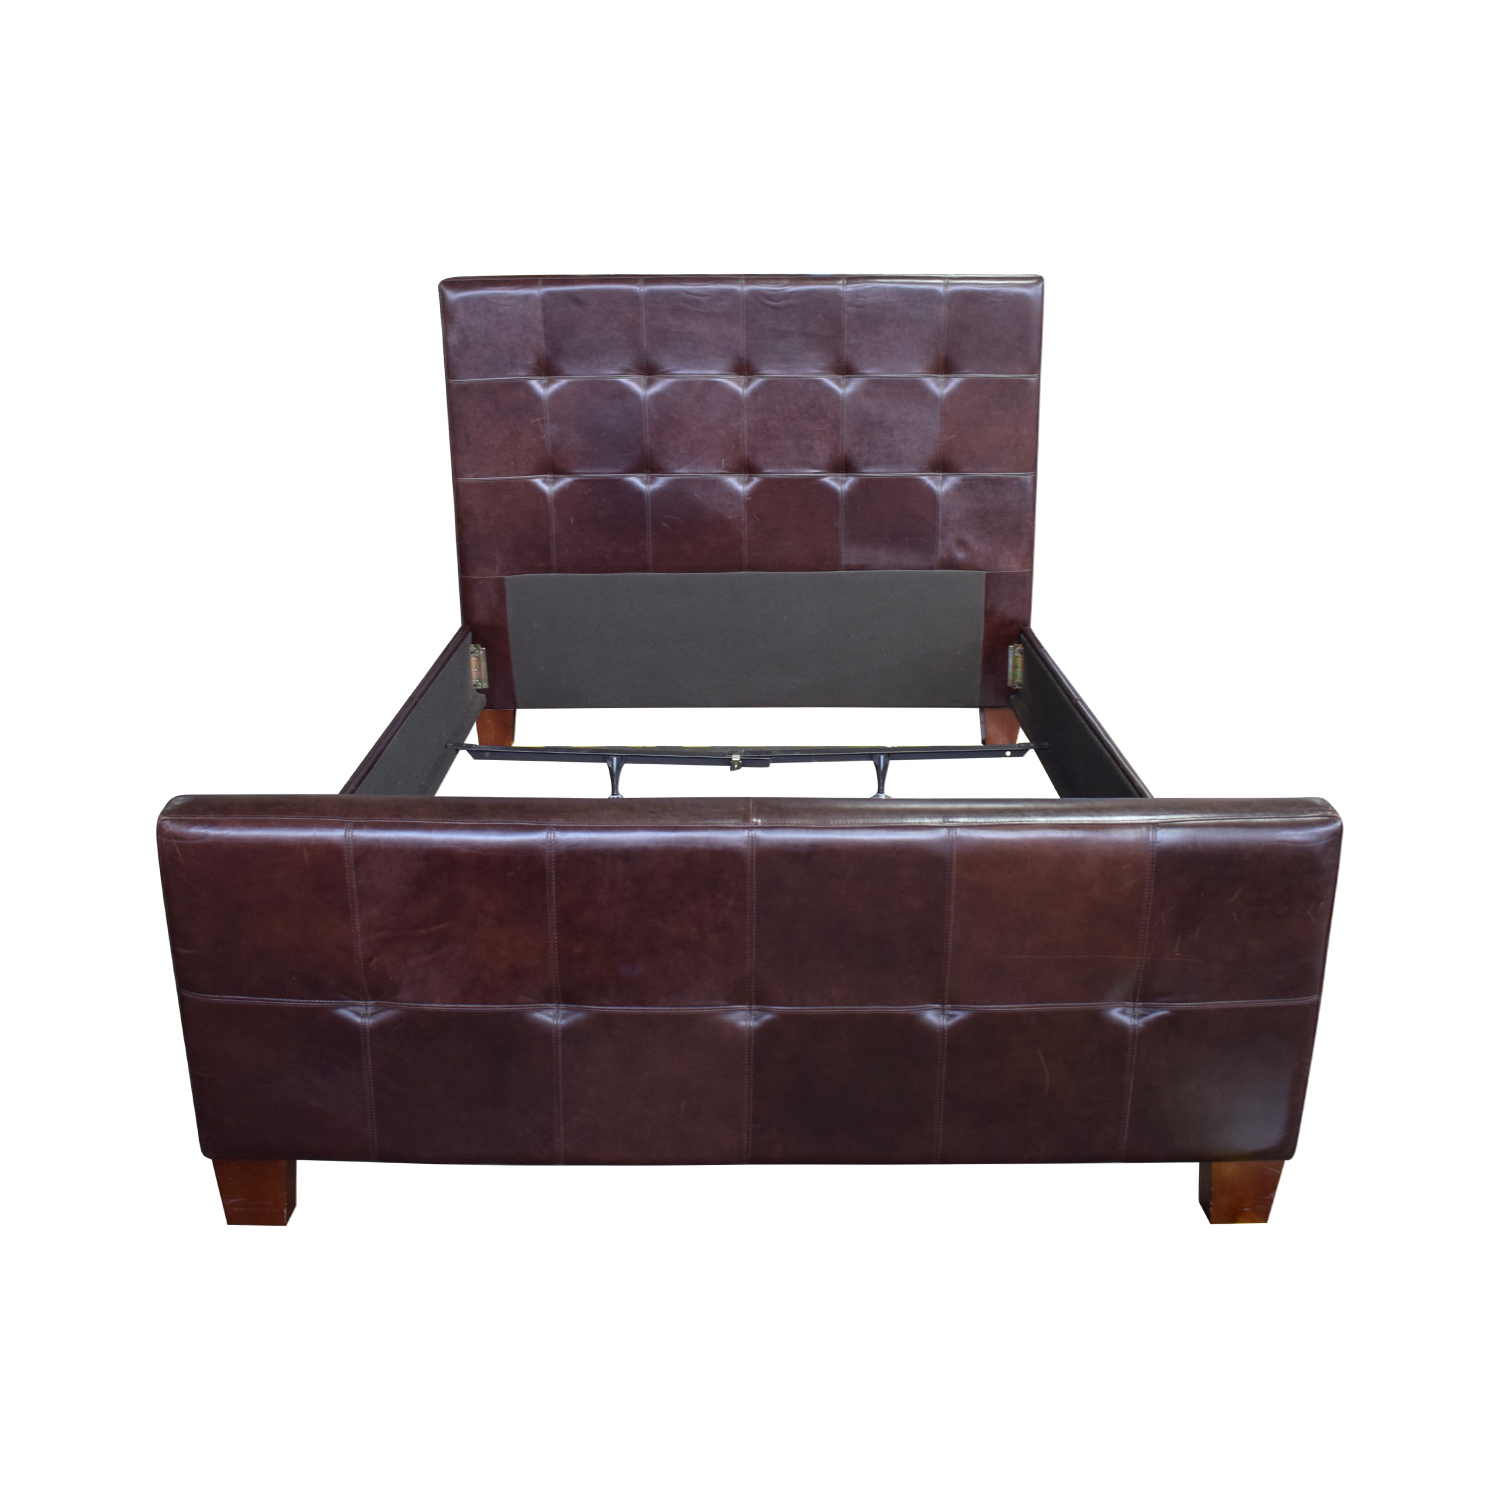 Crate & Barrel Crate & Barrel Brown Tufted Leather Queen Bed Beds